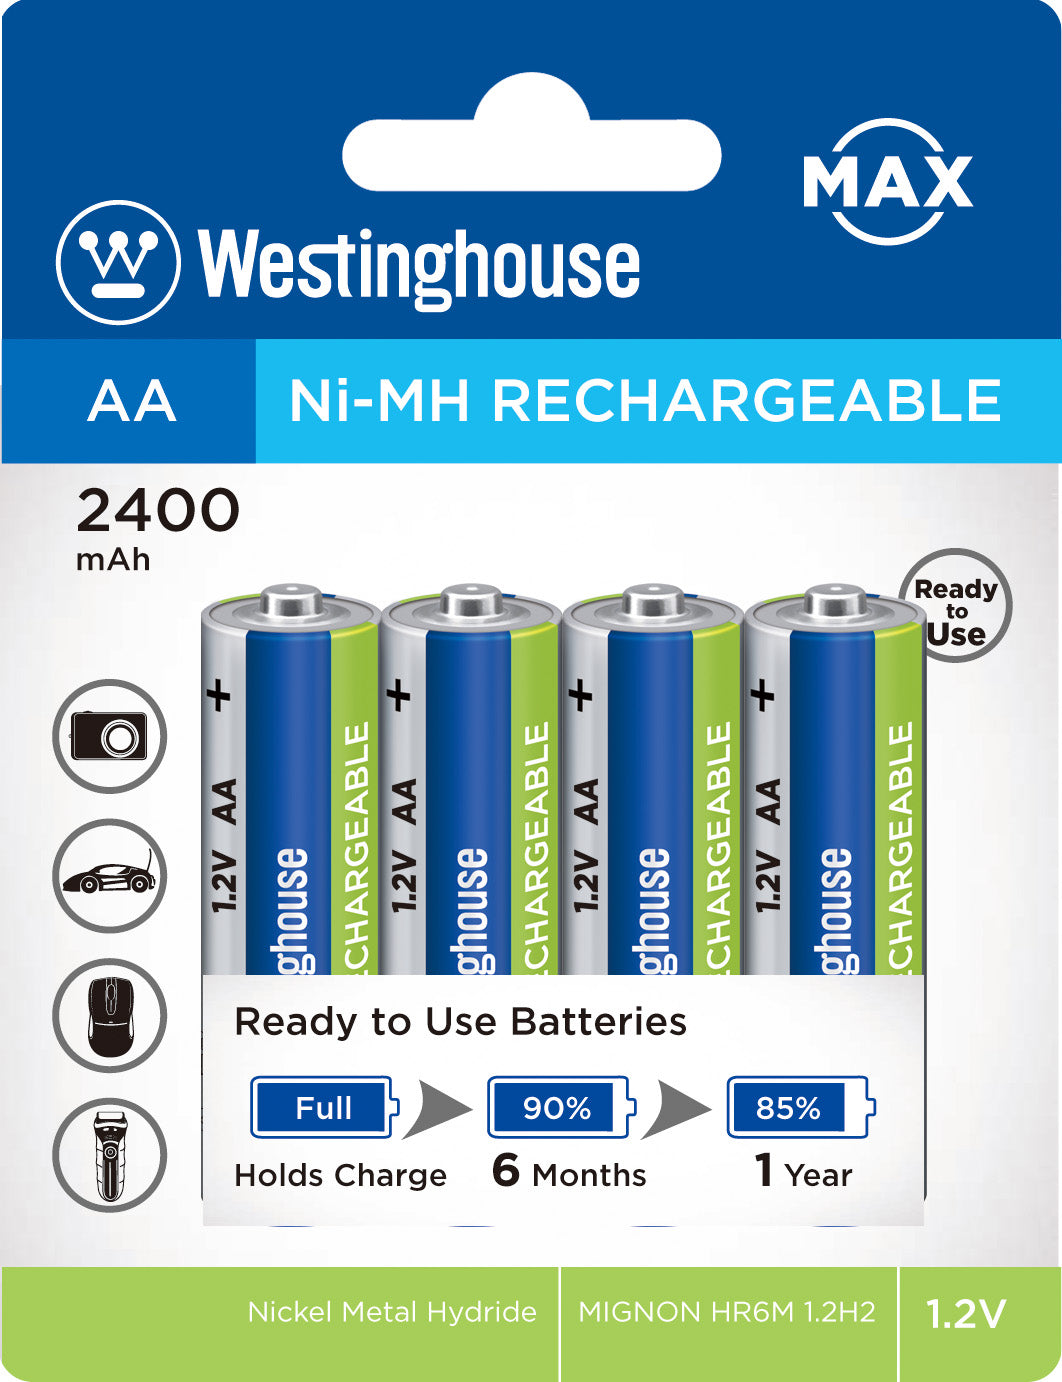 Westinghouse Always Ready AA Ni-Mh 2400mah Rechargeable Battery 4pk